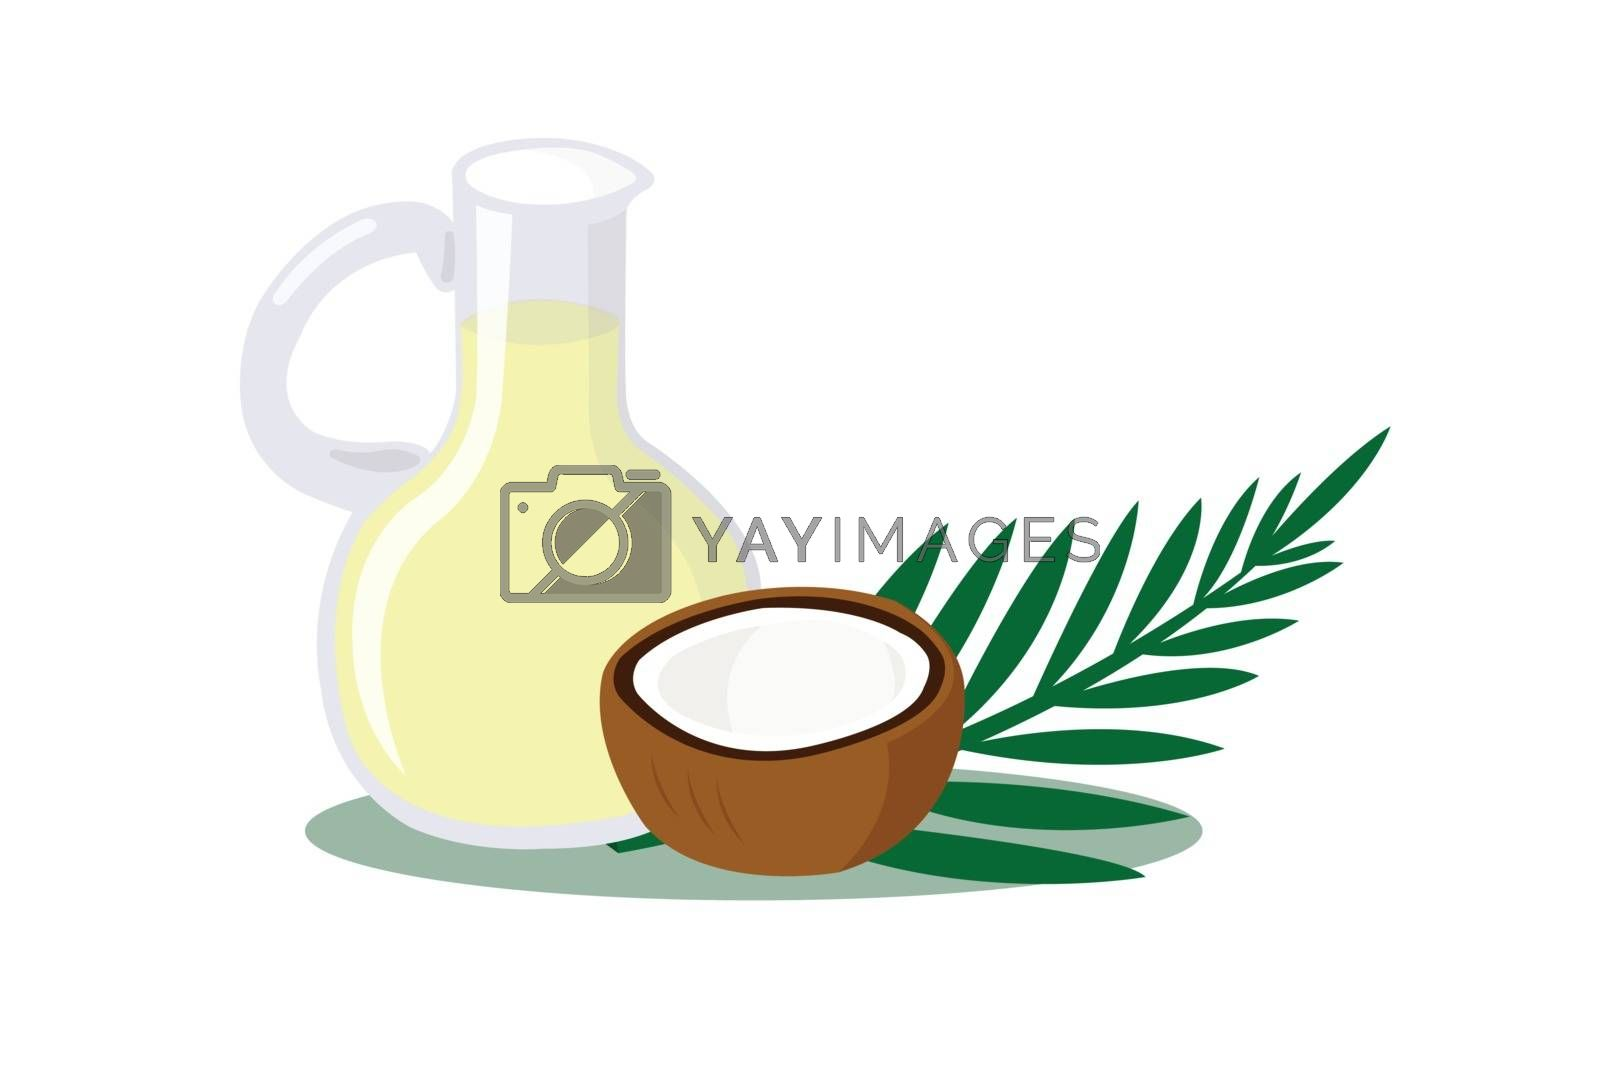 Coconut and coconut oil isolated on white background.